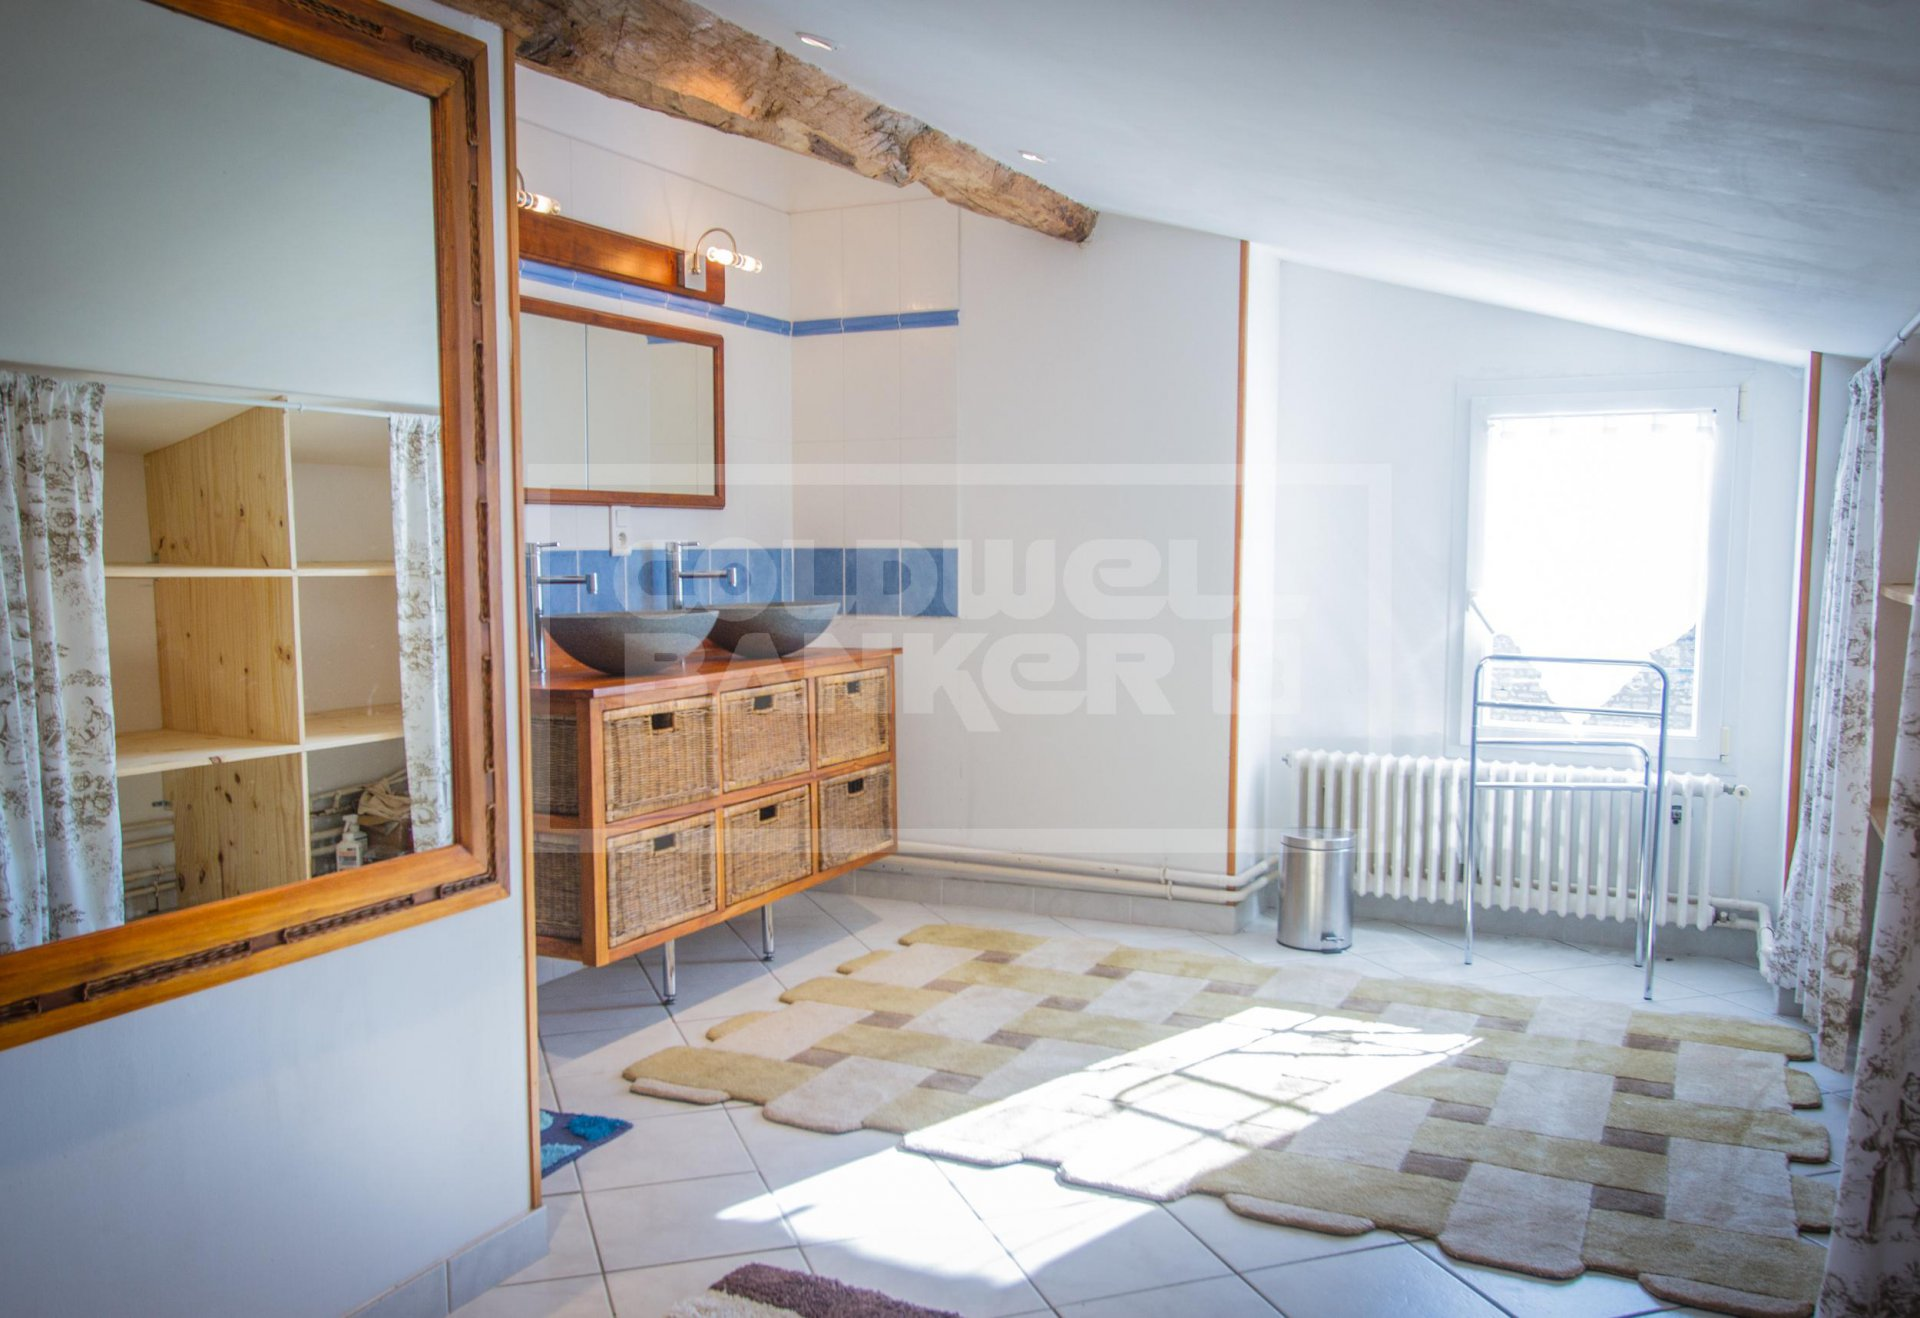 Stone House for Sale with workshop, garage and garden - Between Saintes and Ile d'Oléron